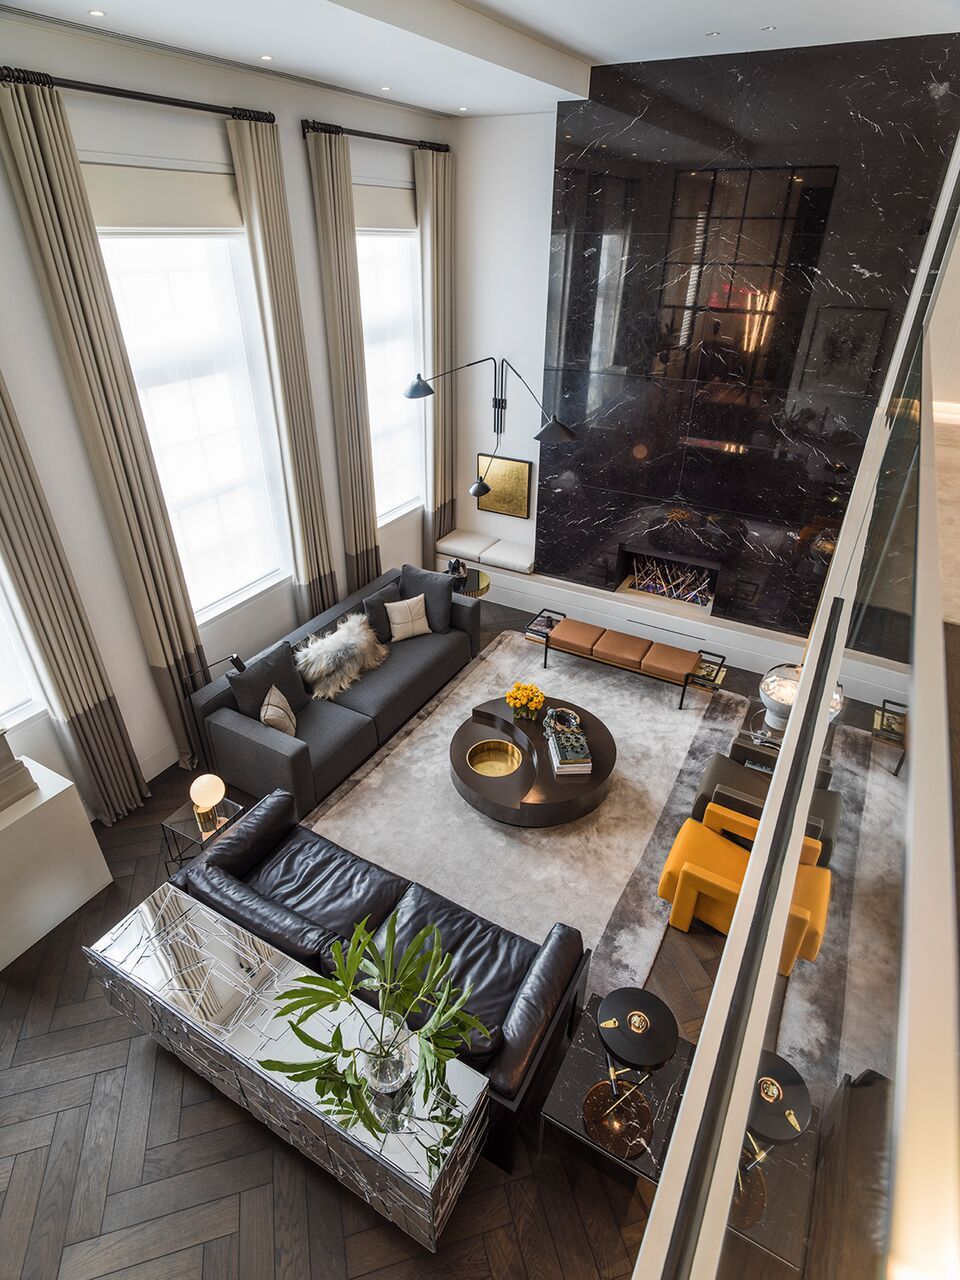 Kelly hoppen is one of greatest interior design inspirations all times her home projects are an unbelievable source luxury ideas that also best by interieurs rh pinterest